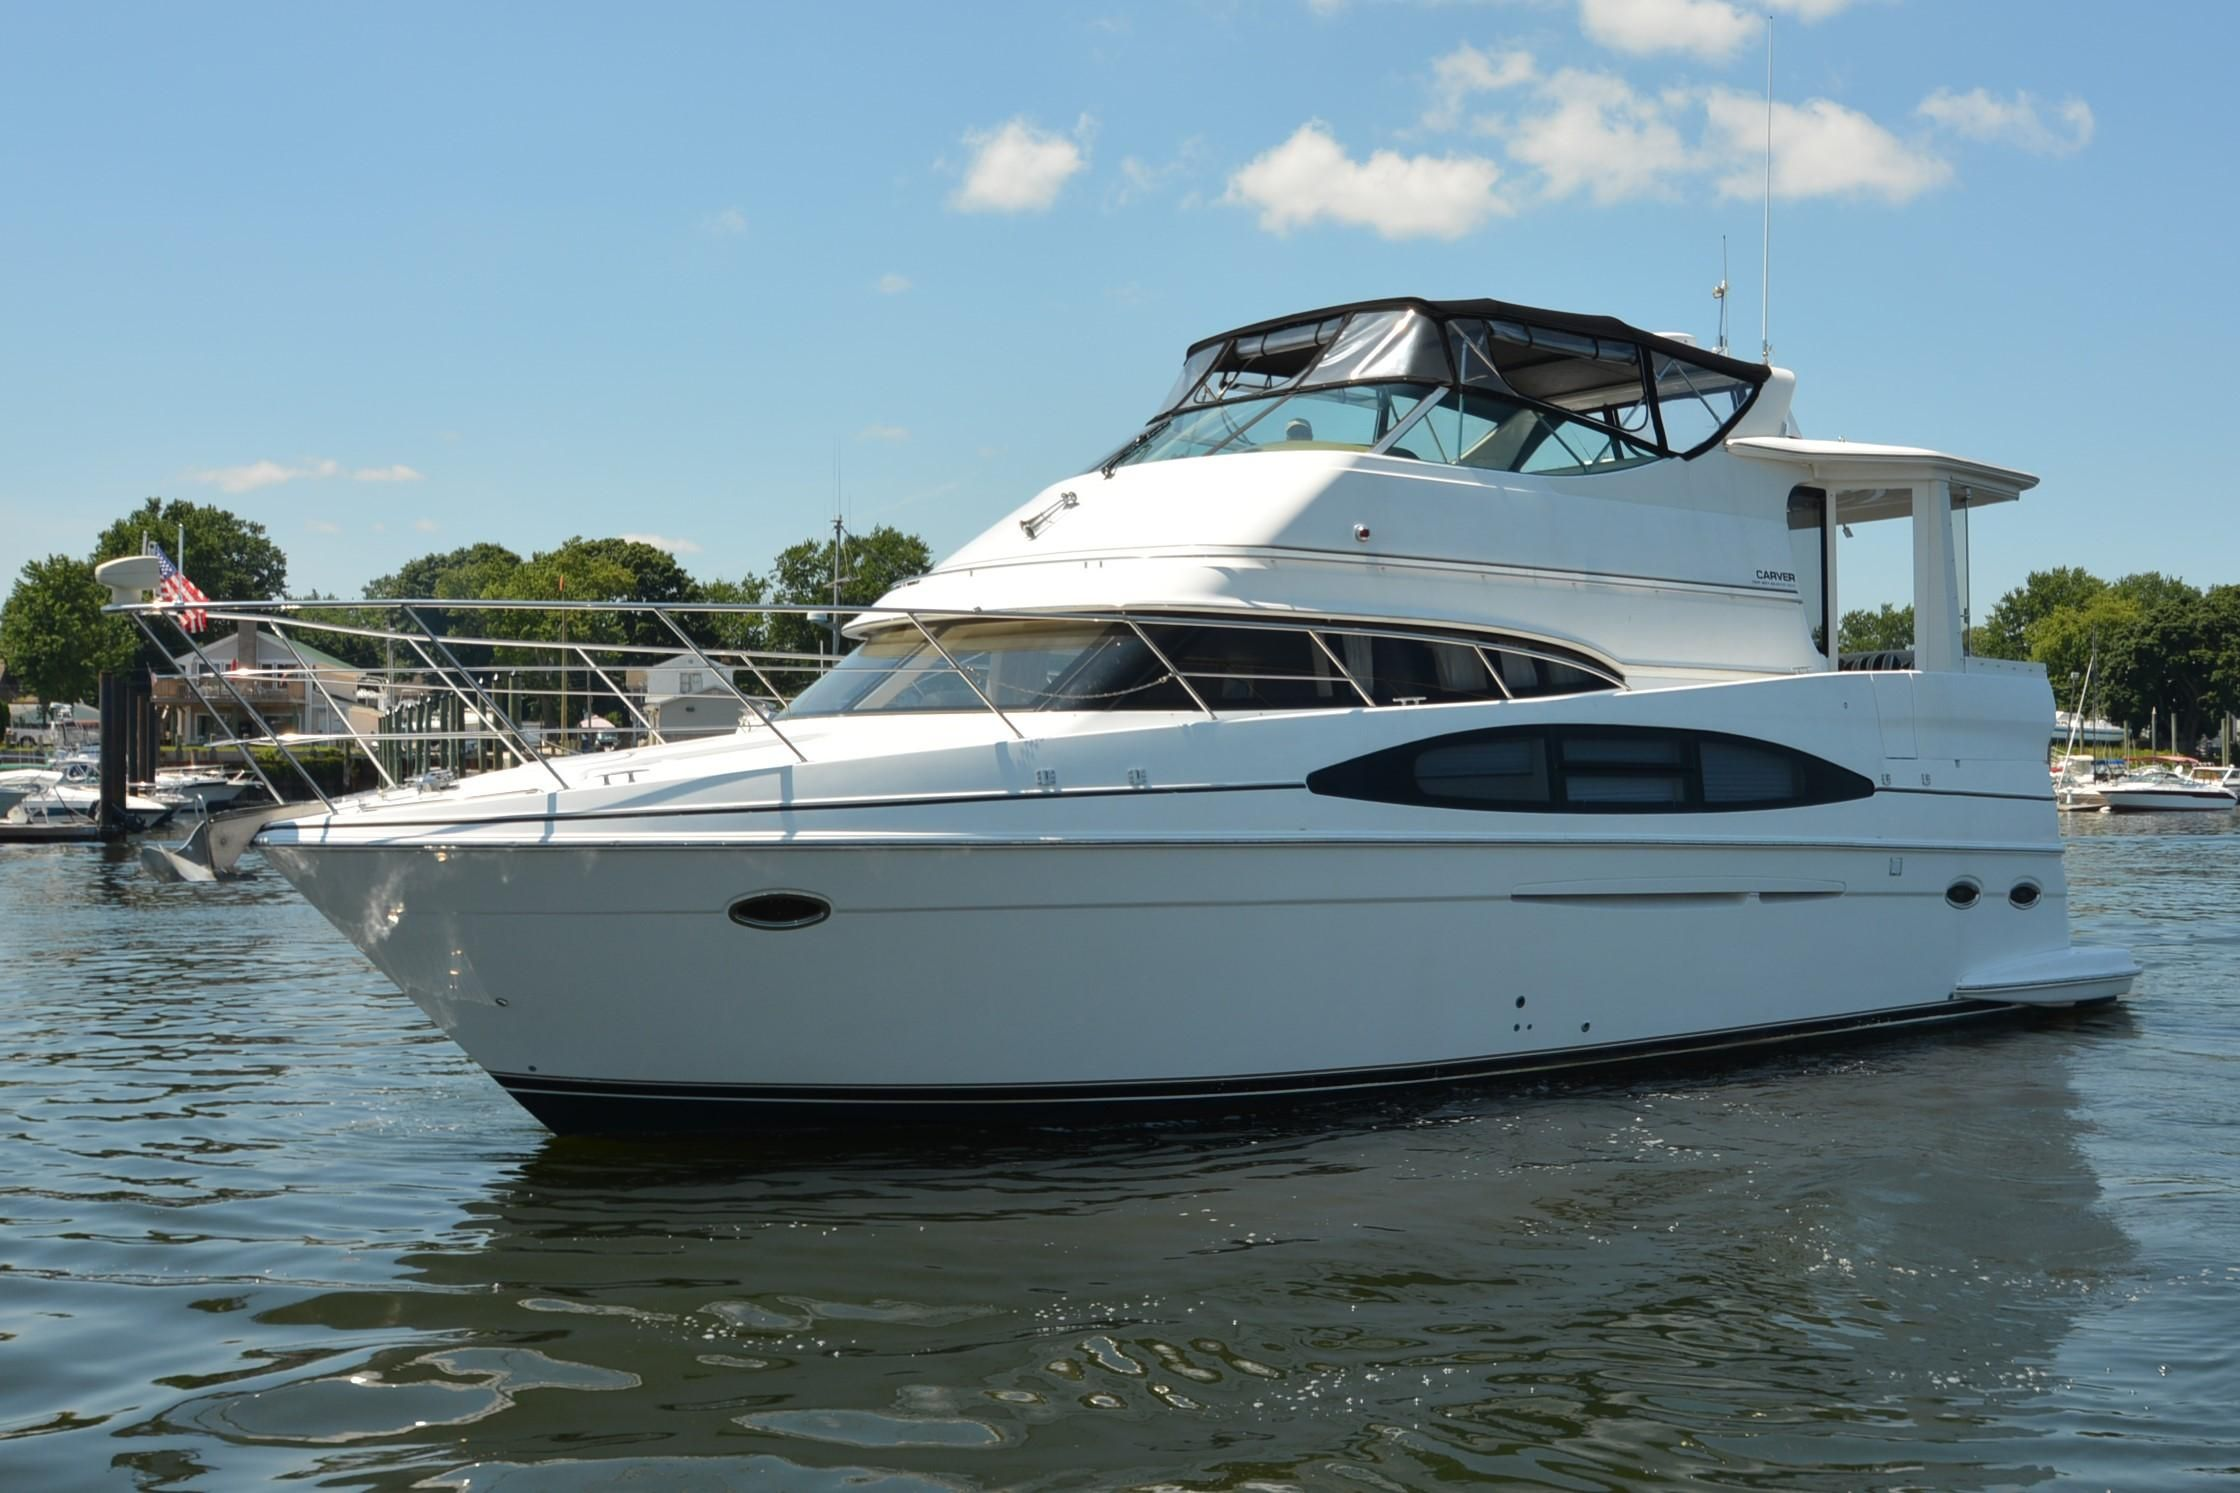 2002 carver 466 motor yacht power boat for sale www for 50 ft motor yachts for sale